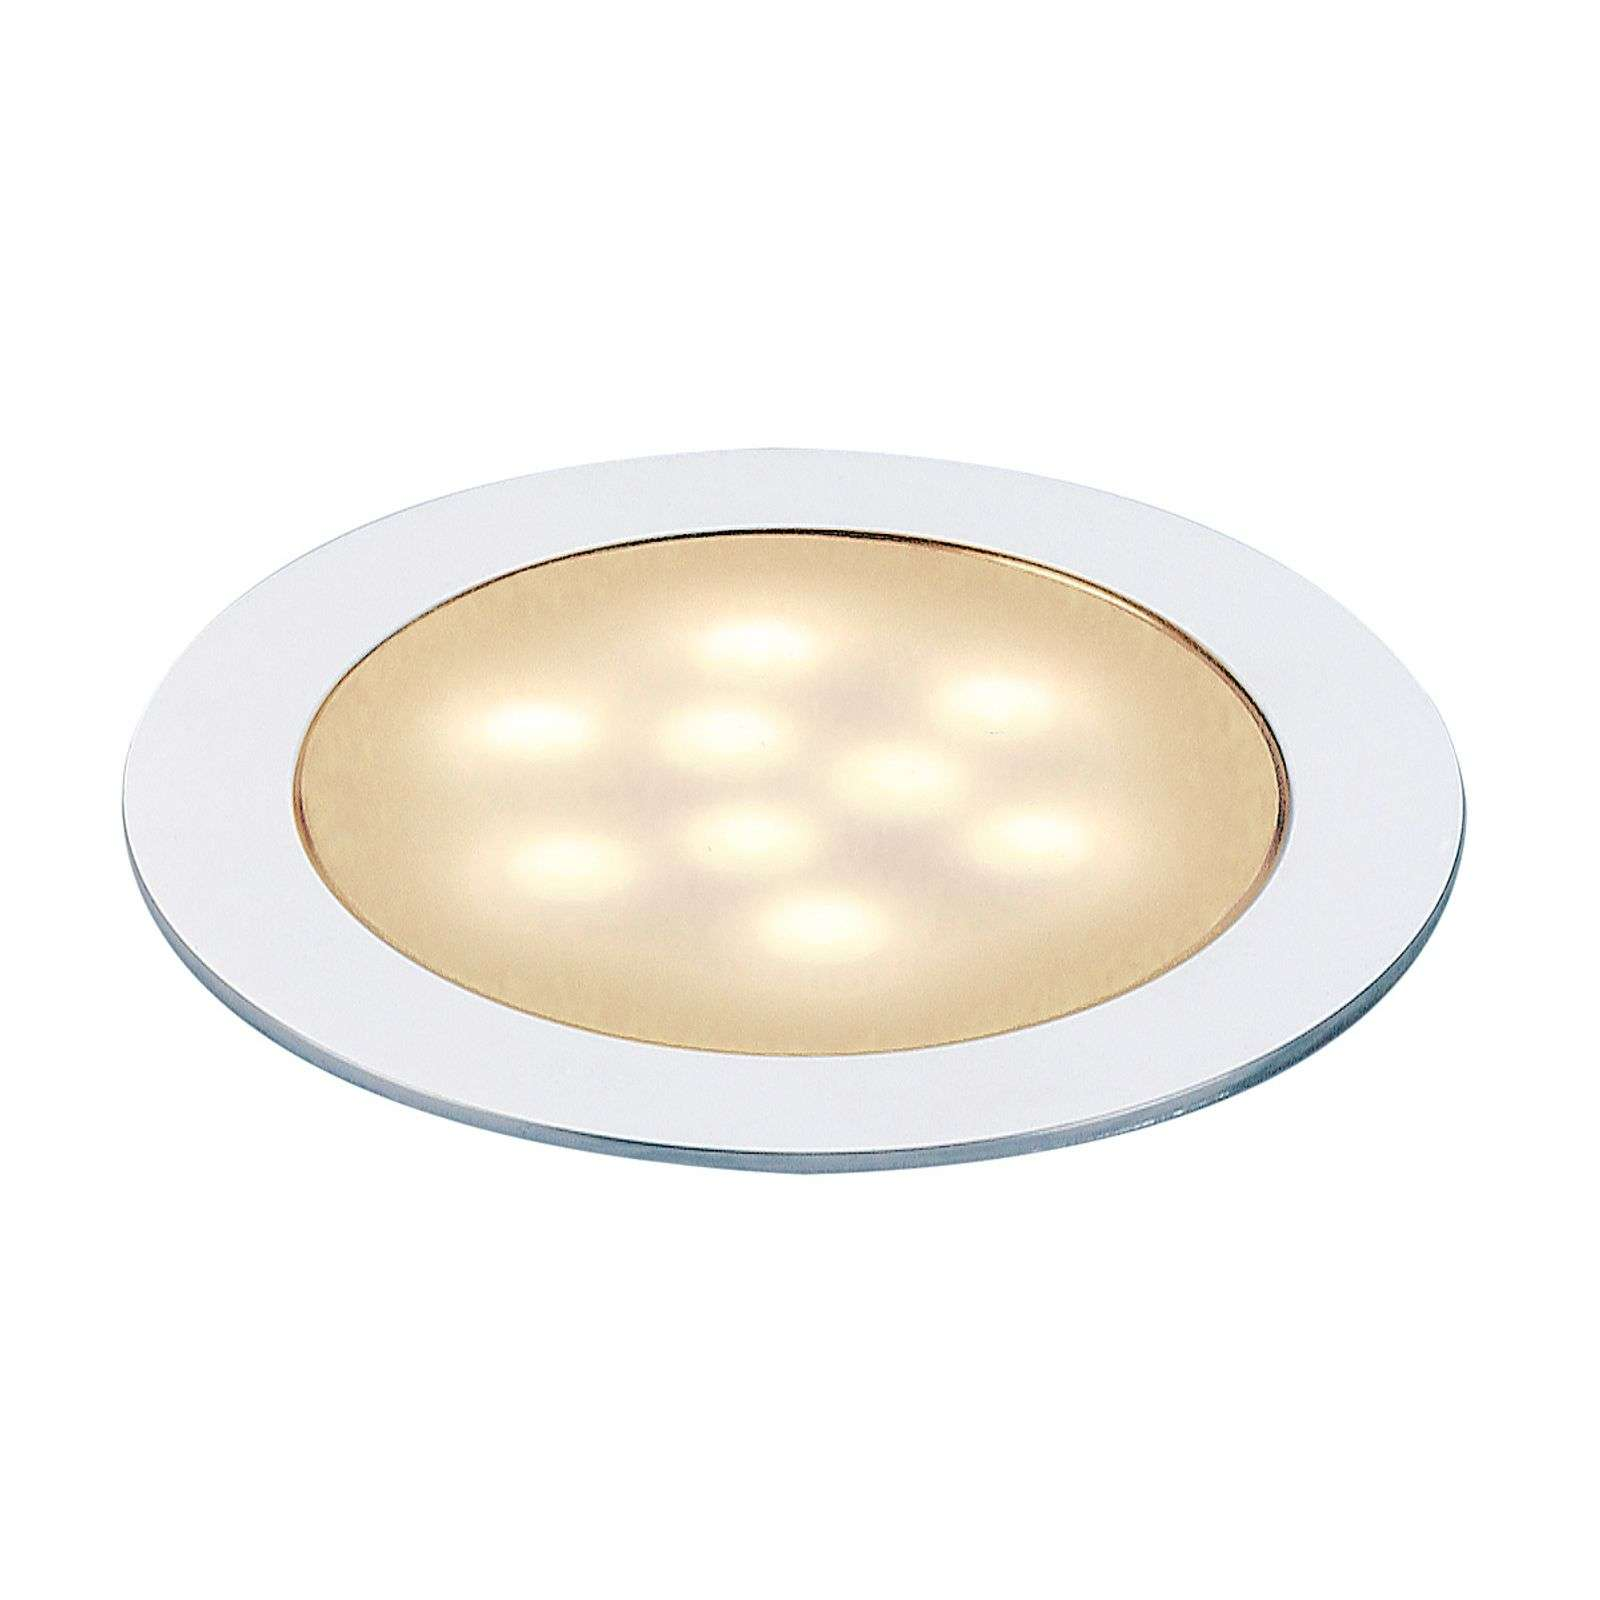 Faretto da incasso efficace LED SLIM LIGHT IP67 ww